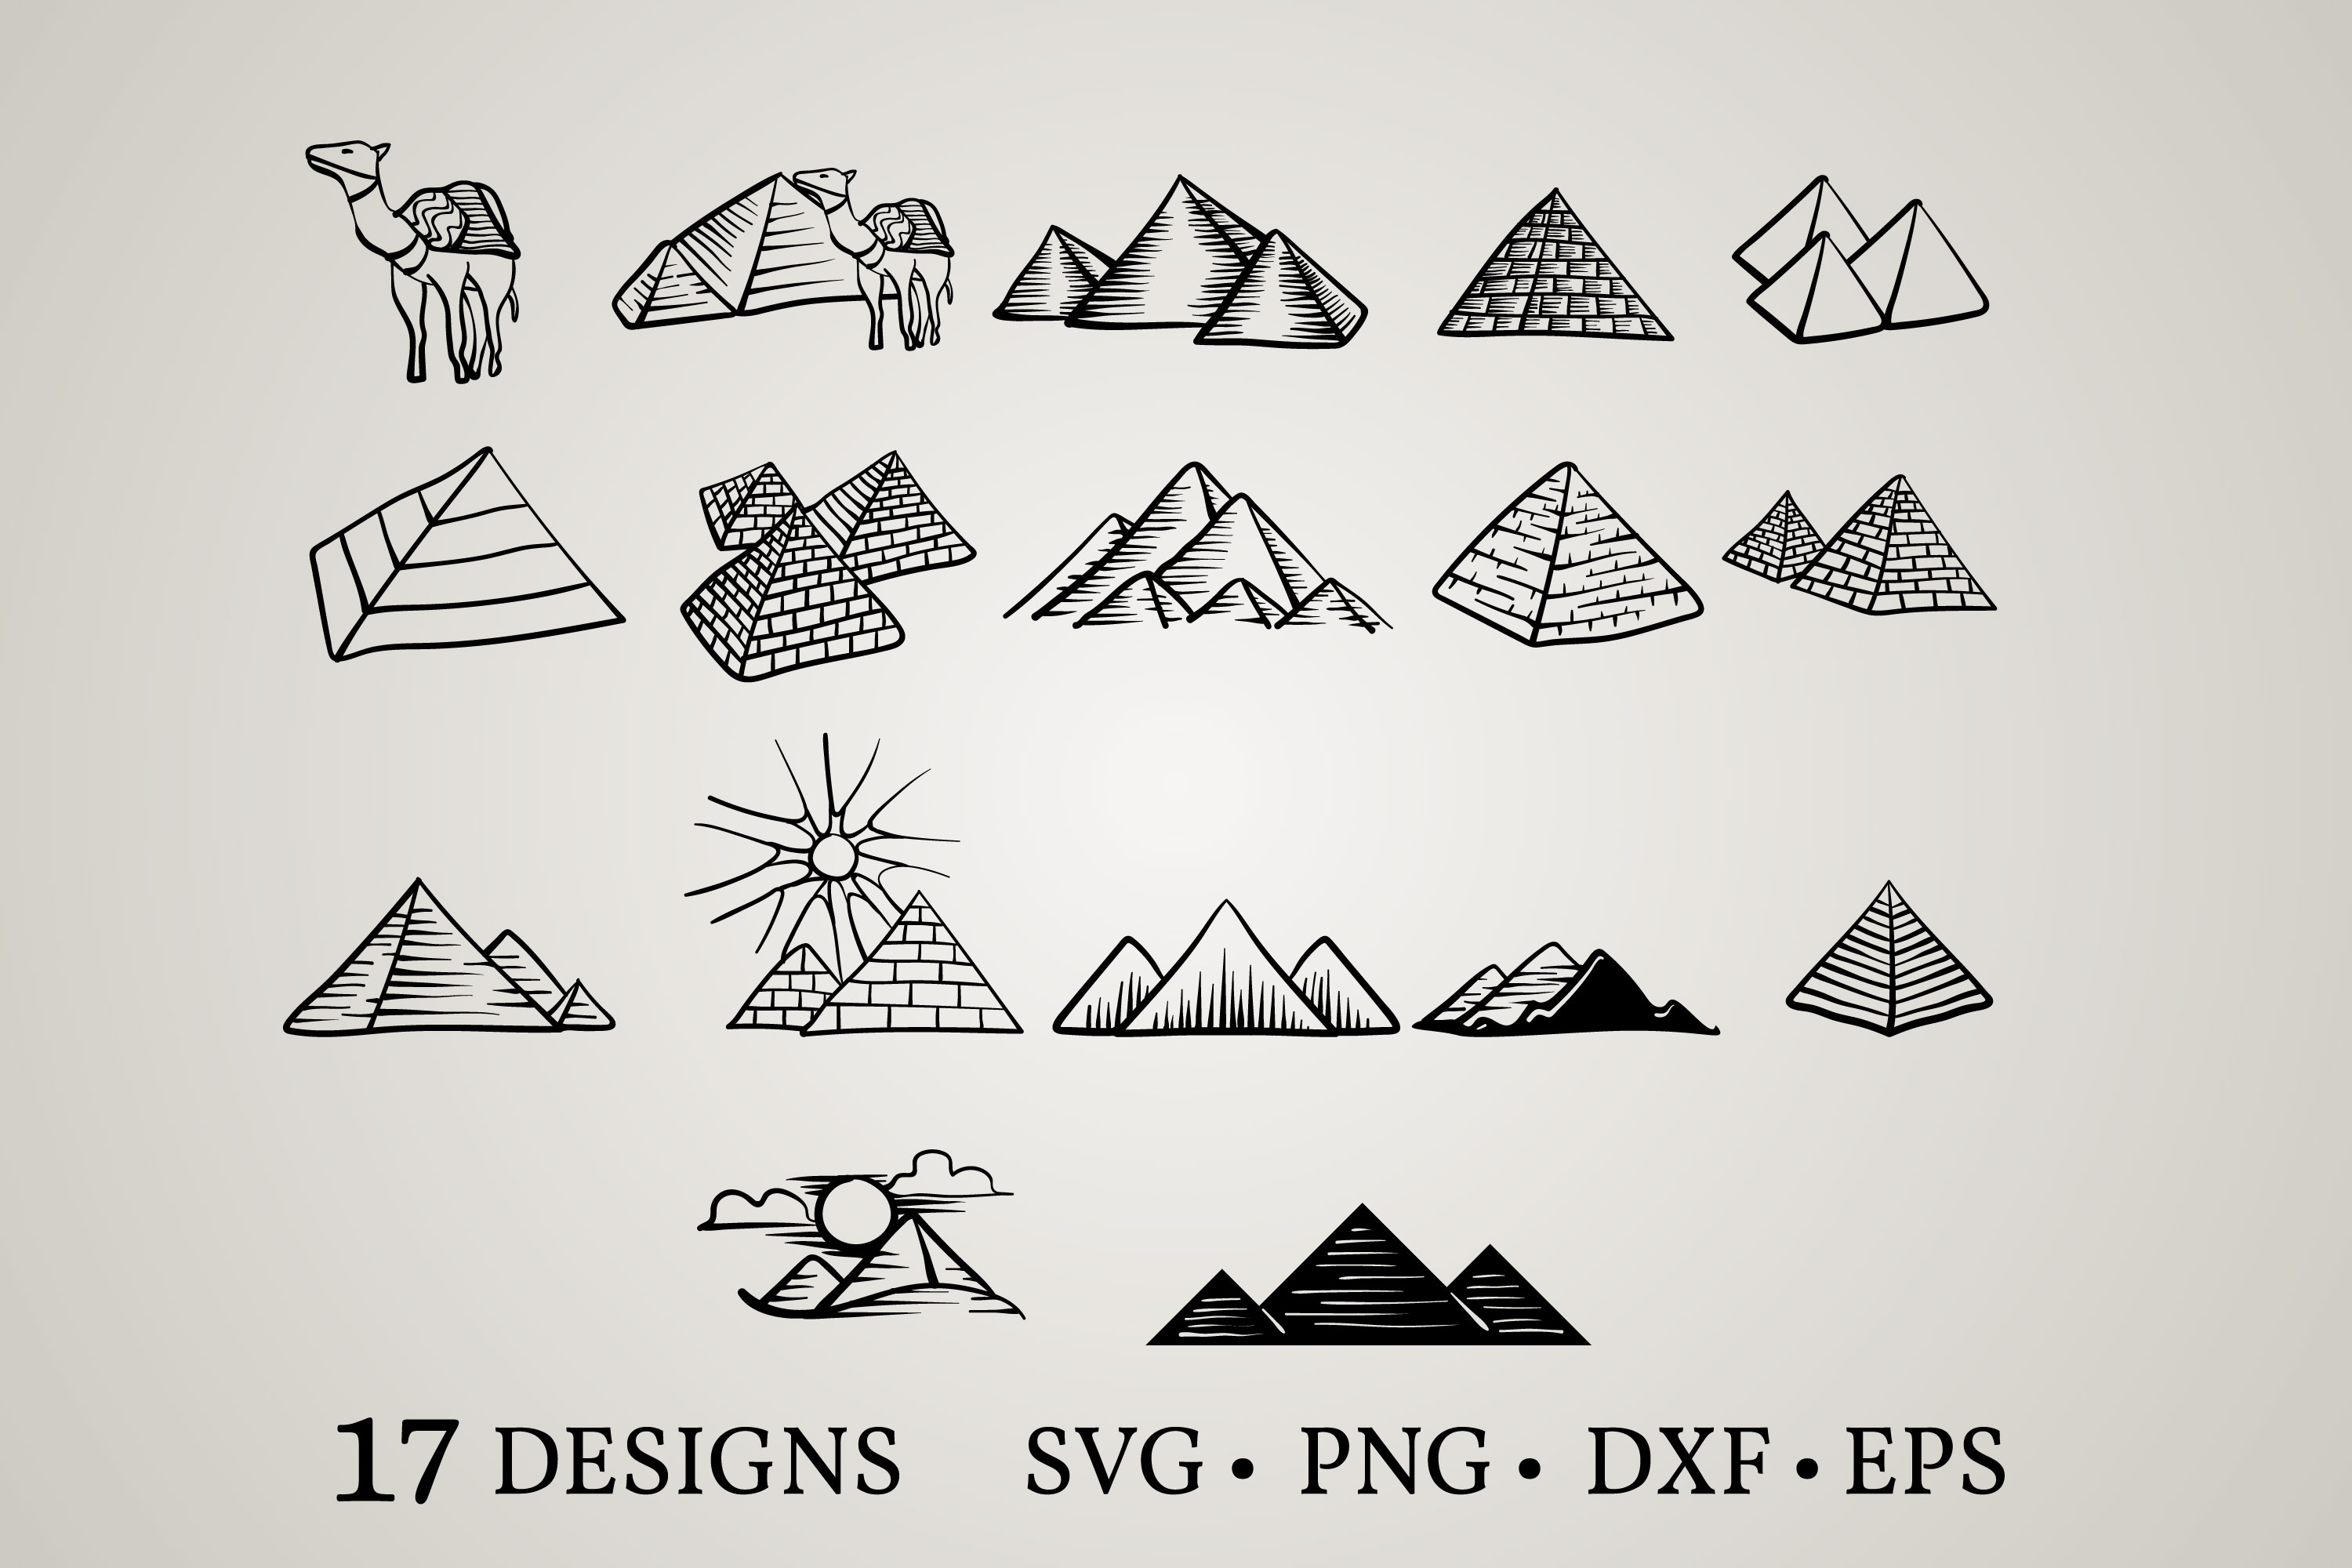 Download Free Pyramid Bundle Graphic By Euphoria Design Creative Fabrica for Cricut Explore, Silhouette and other cutting machines.